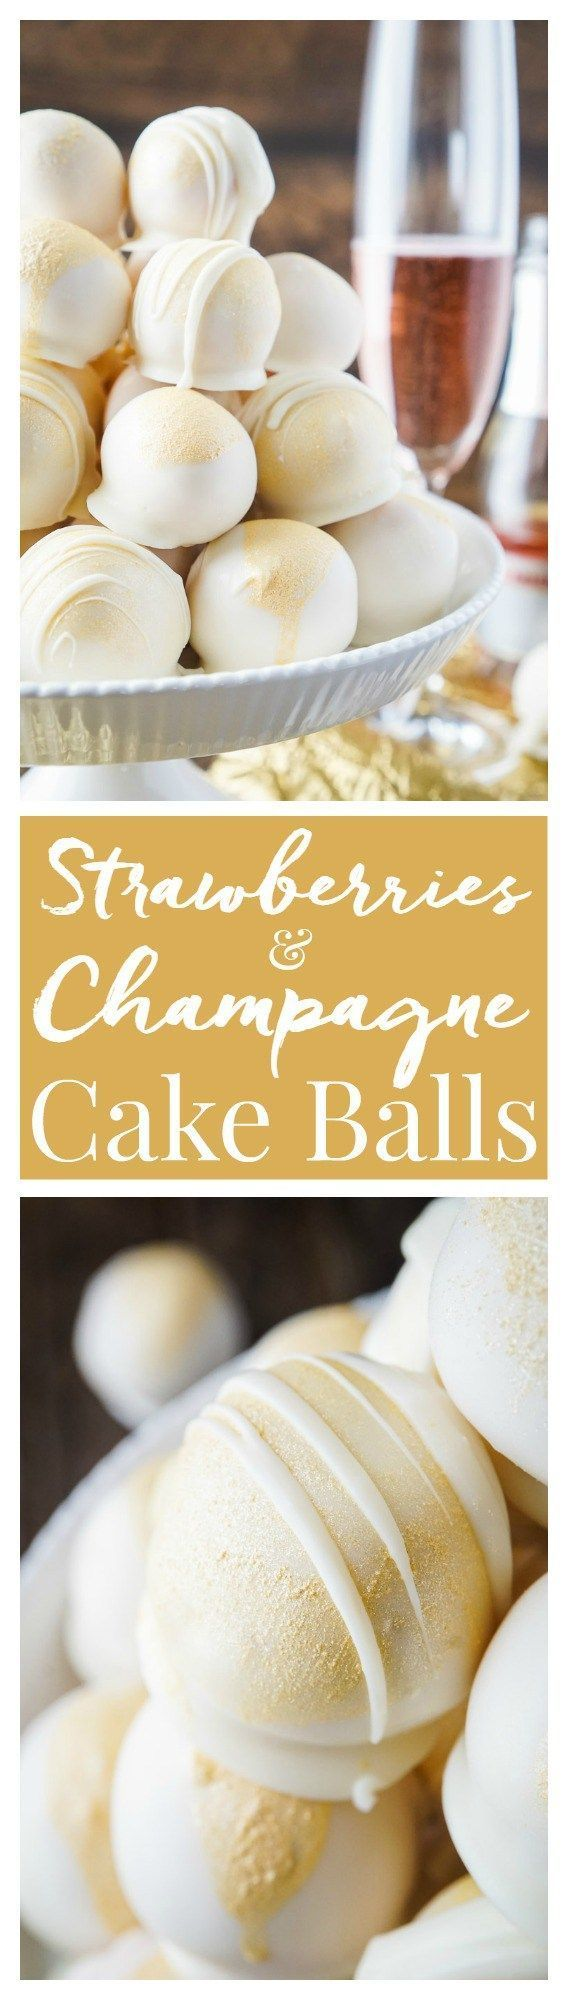 These Strawberries & Champagne Cake Balls are perfect for a New Year's Eve party, Valentine's Day, Bridal Showers and so much more! They make an easy dessert that tastes like fruity pebbles!